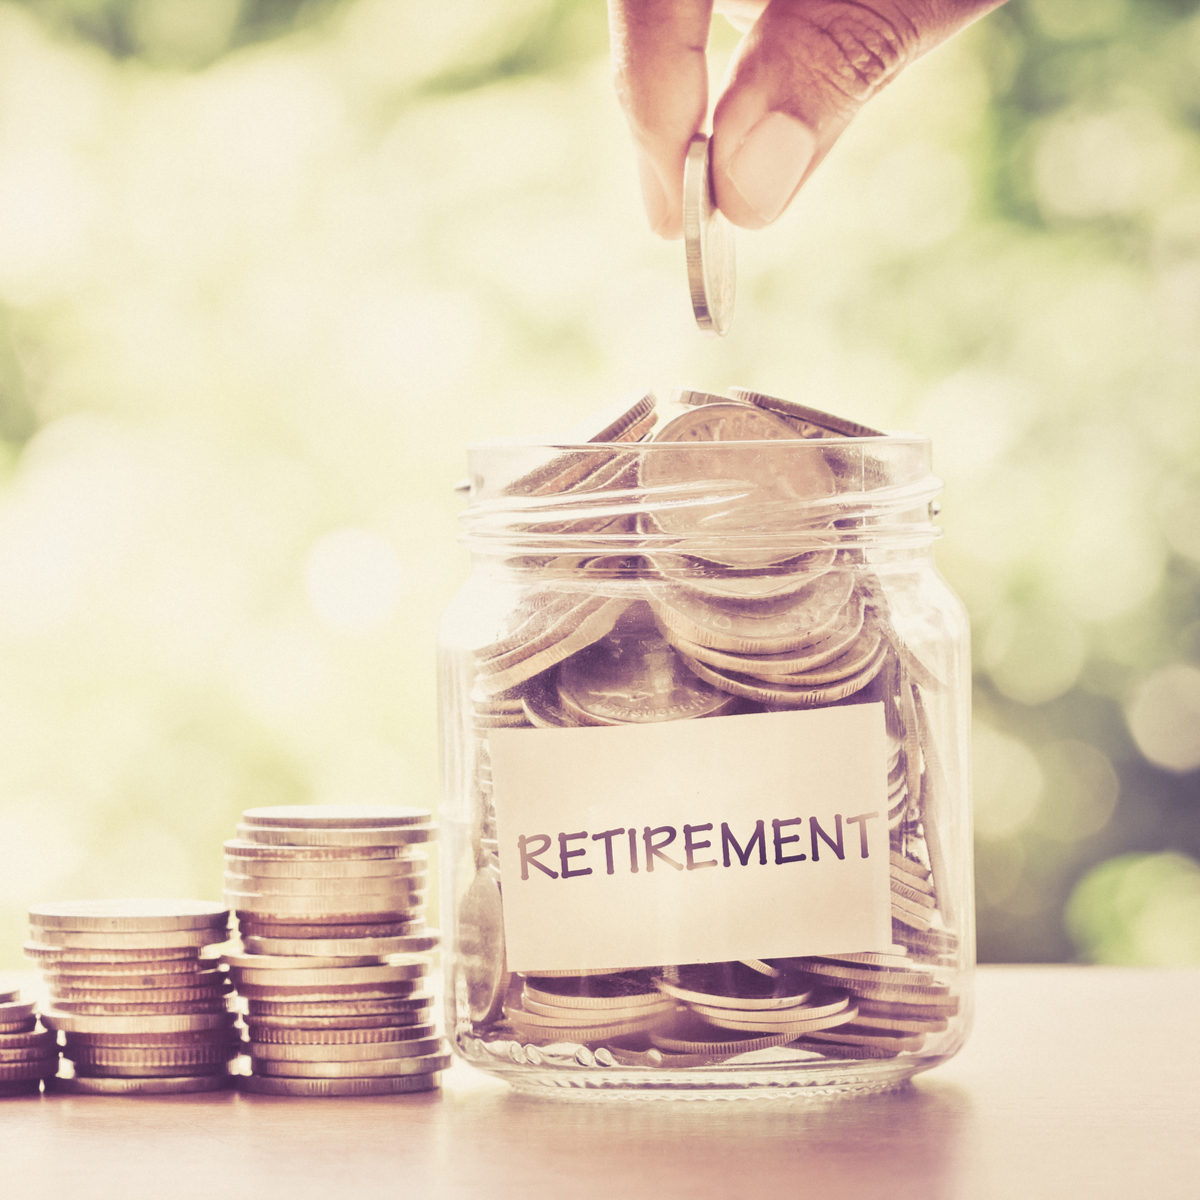 Deadline to return distributions to retirement accounts is Aug. 31